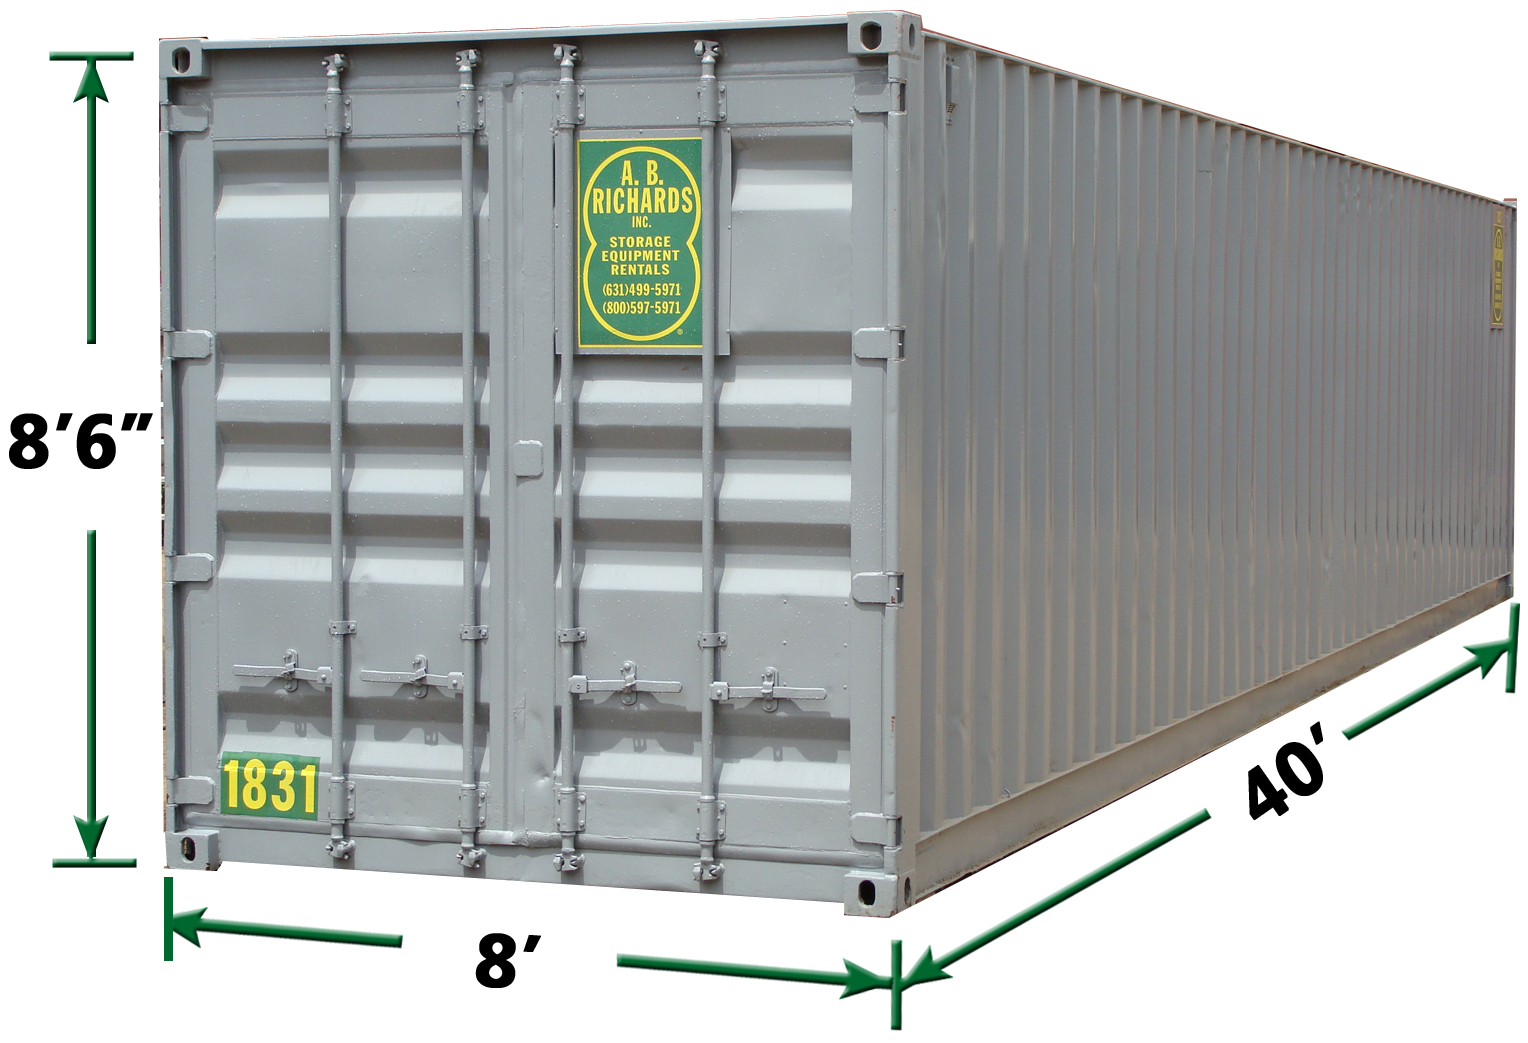 40' Construction Storage Container Rentals in PA by AB Richards